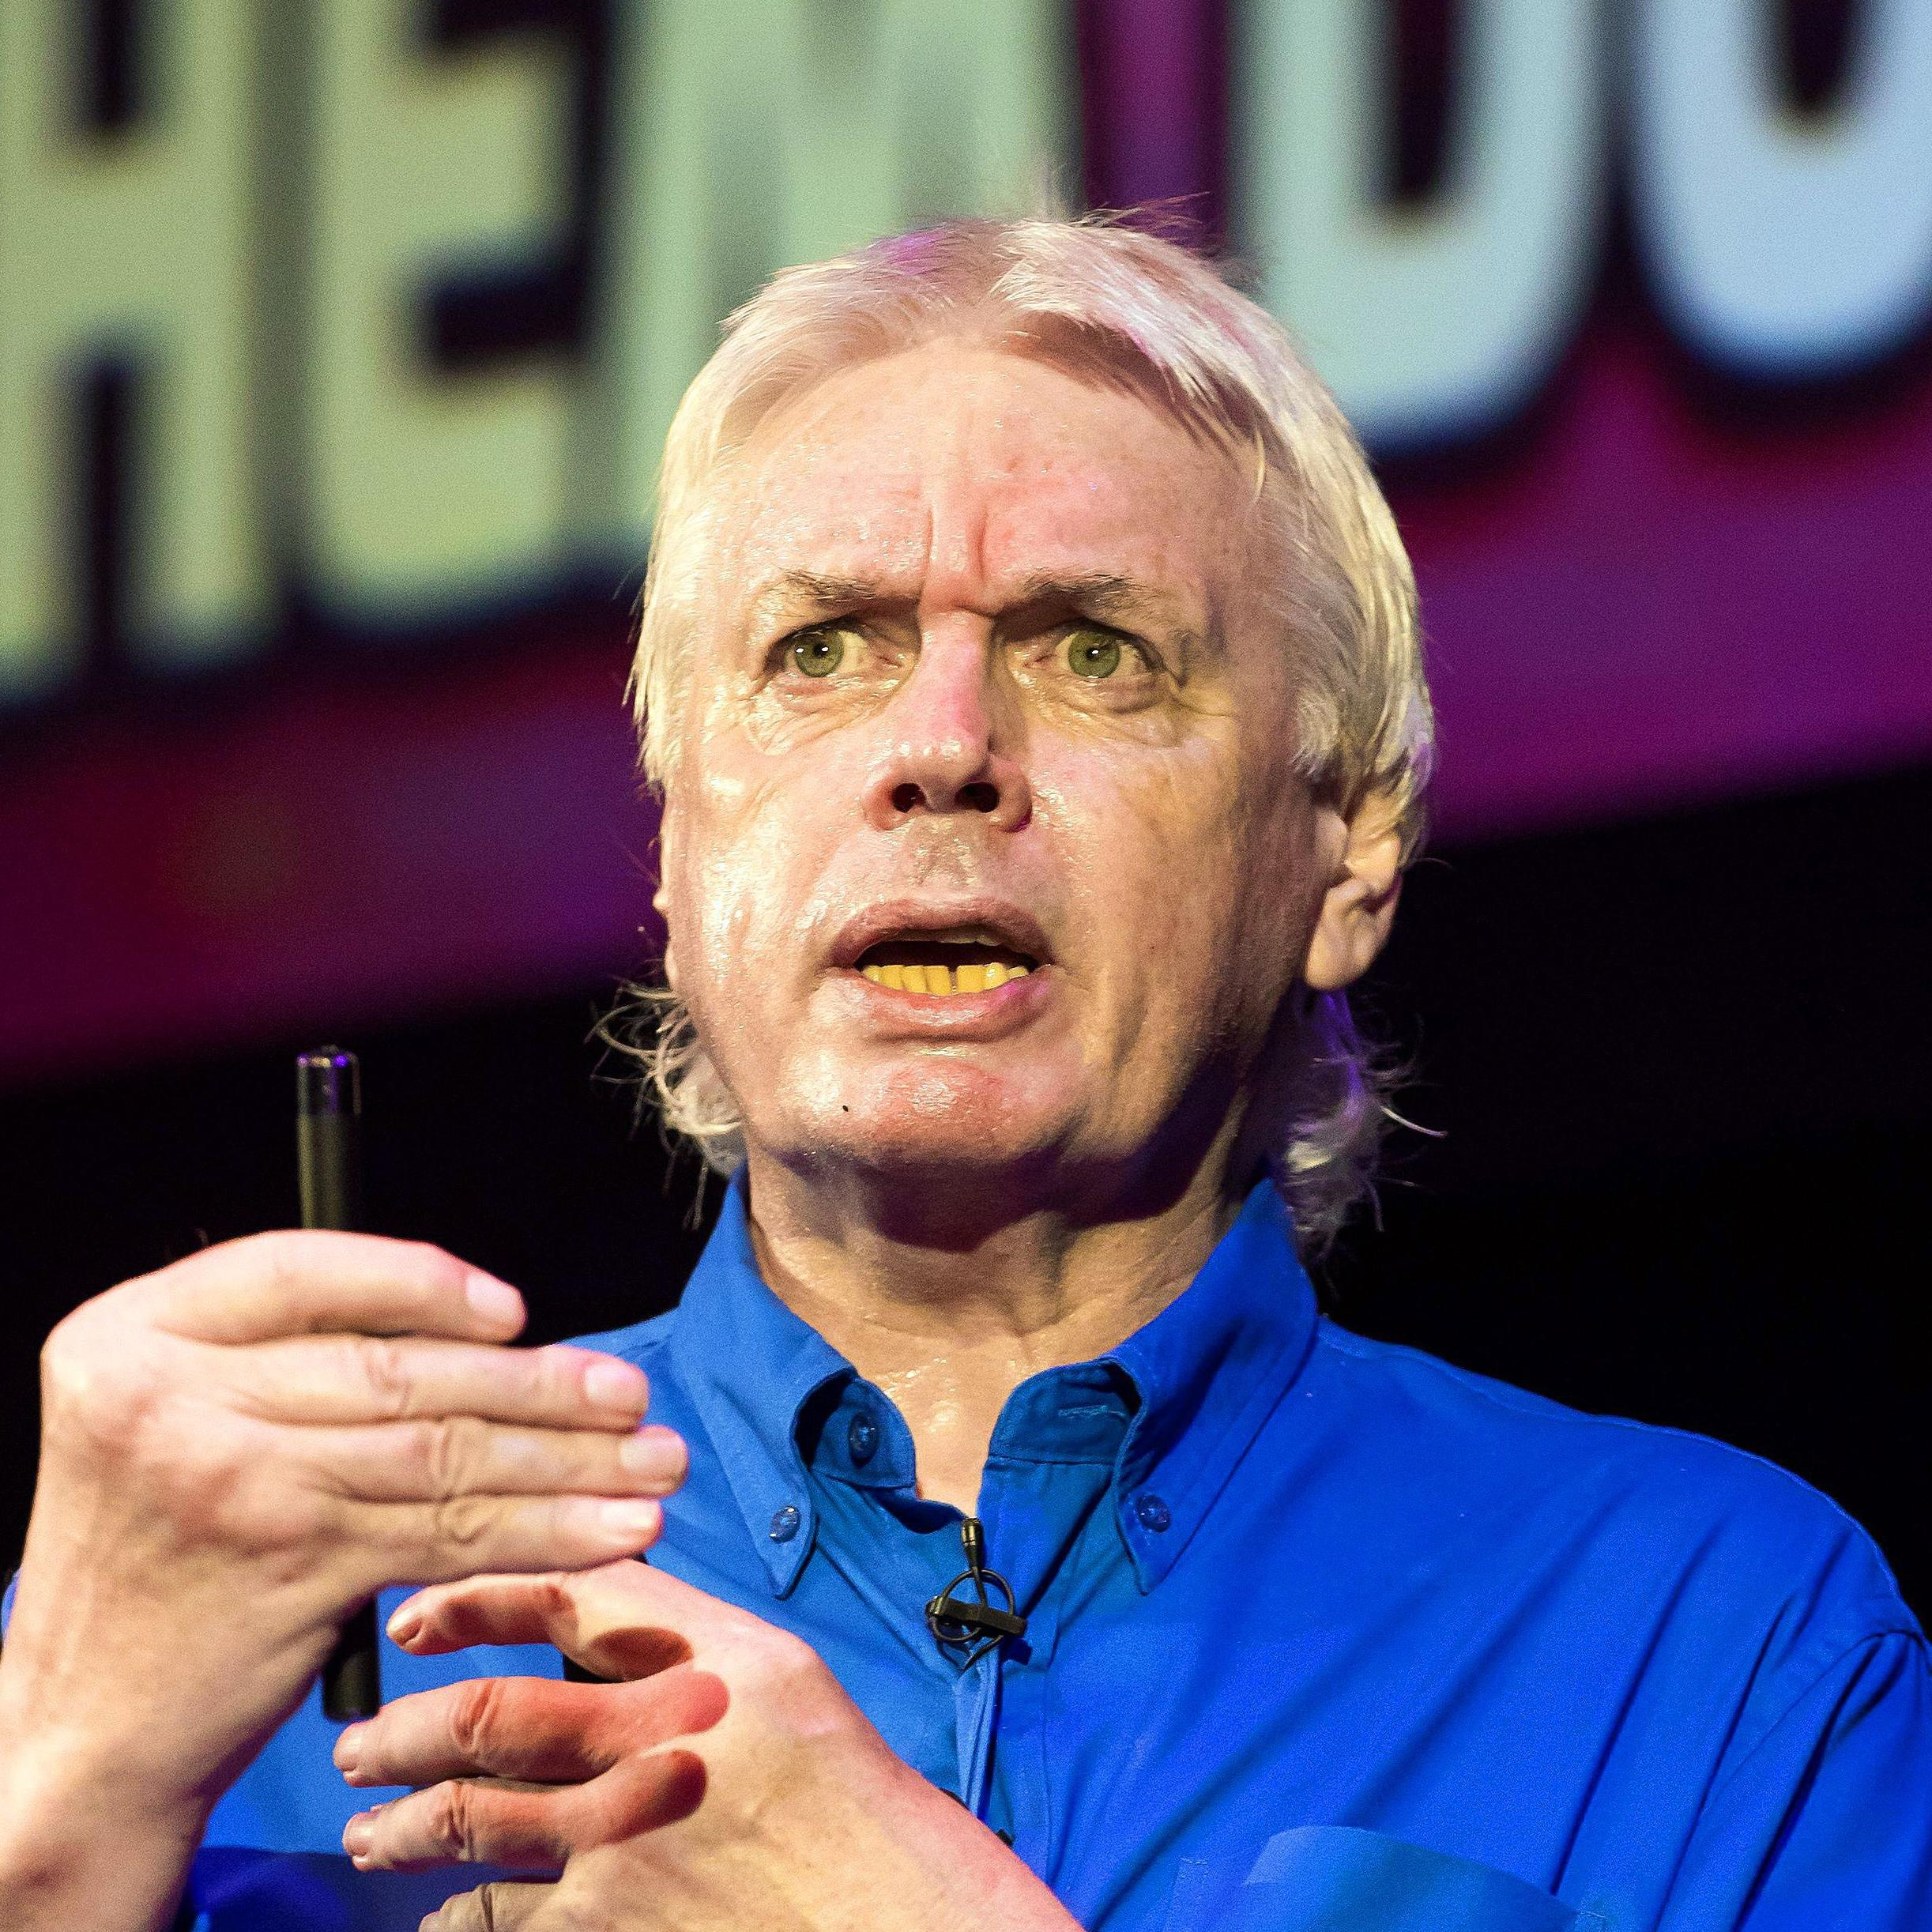 Coronavirus: David Icke official Facebook page removed